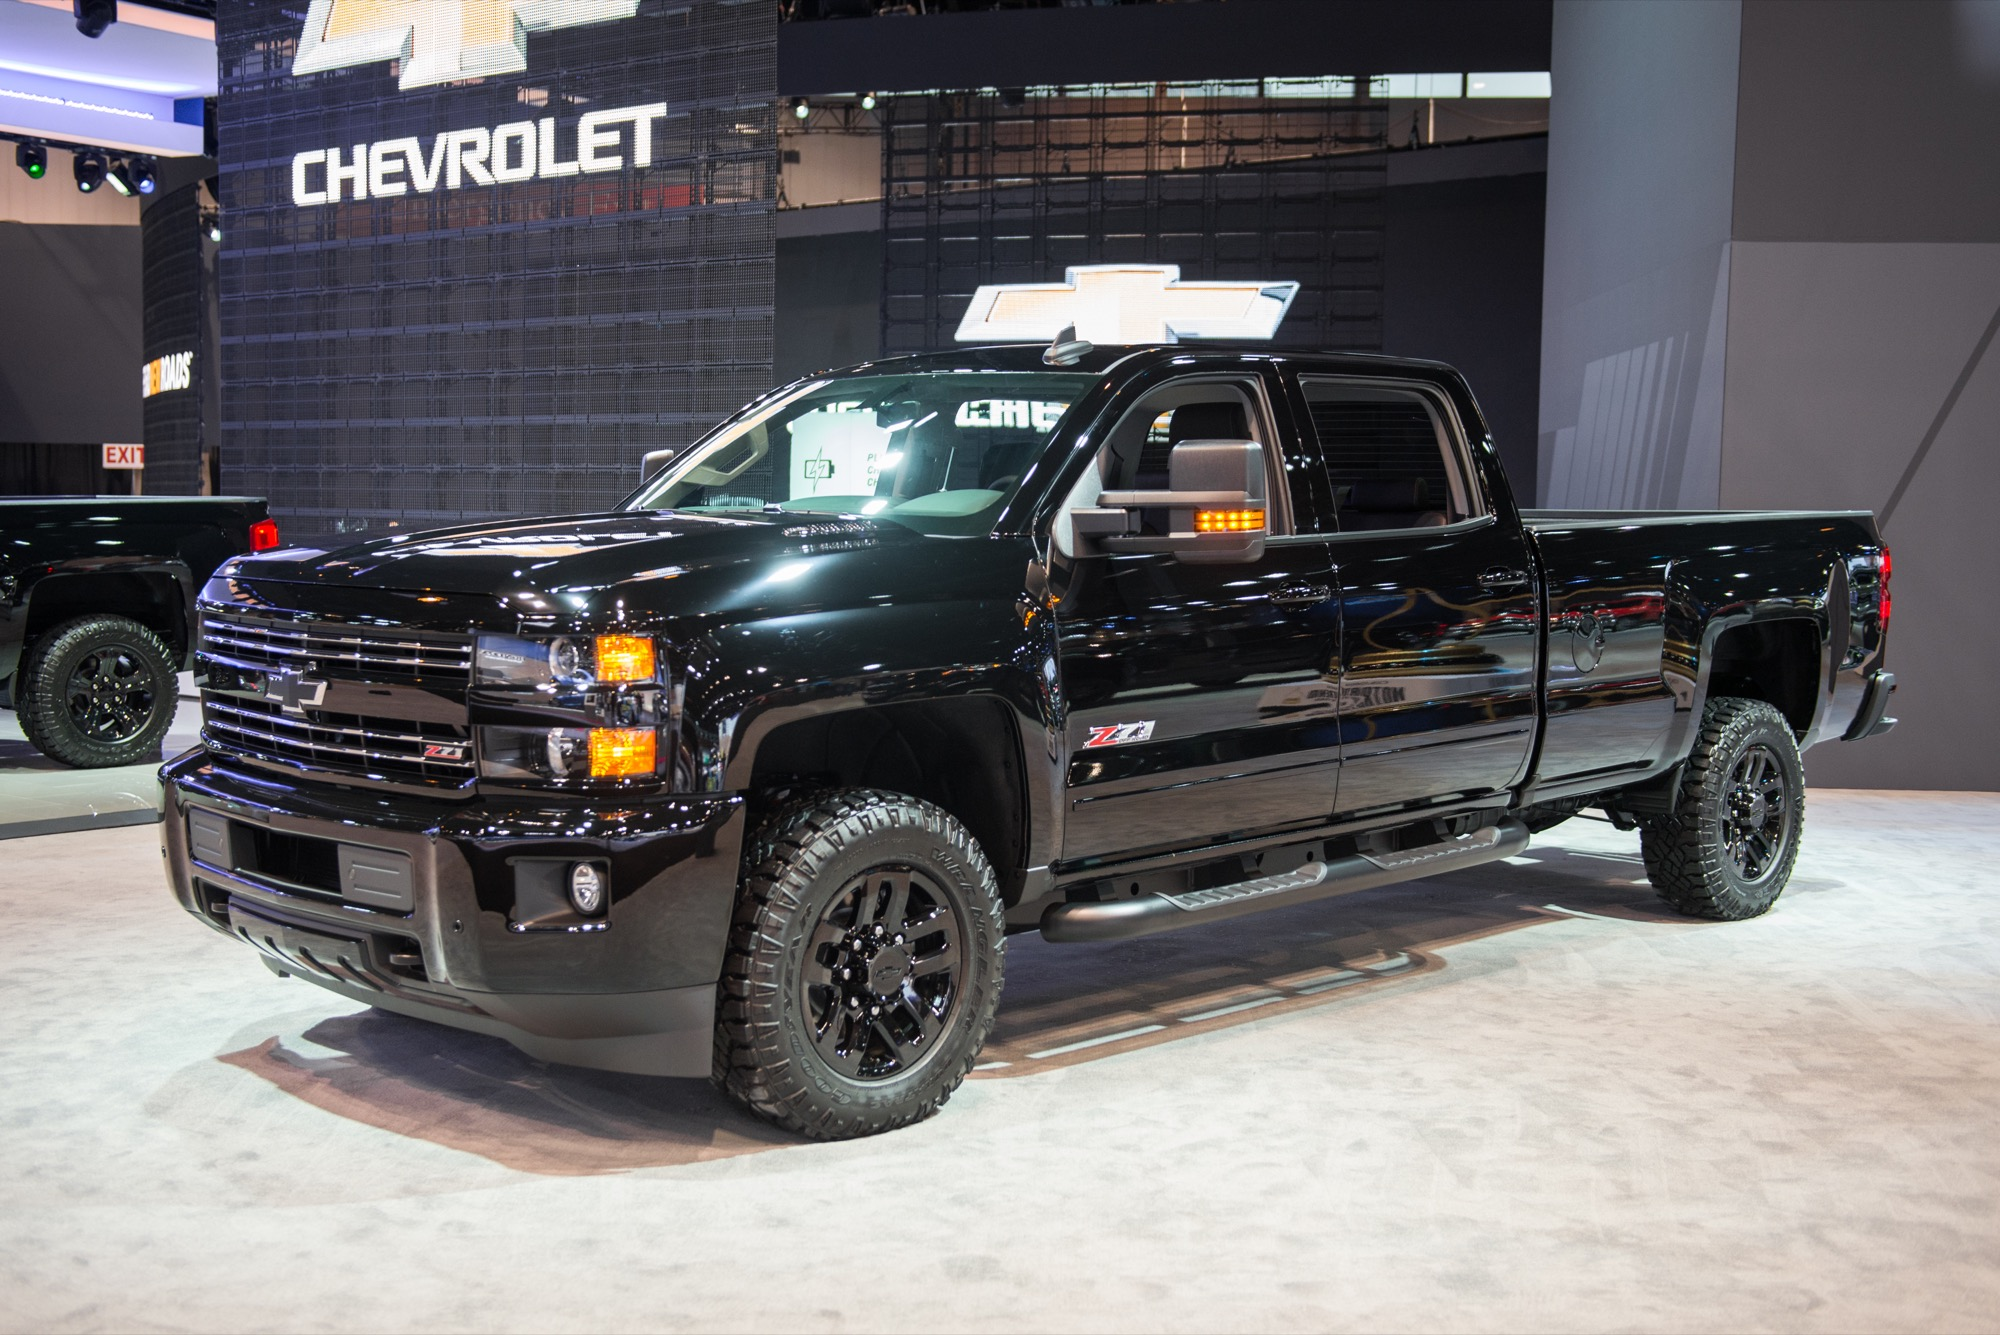 2016 Chevrolet Silverado 2500hd Photos, Informations ...